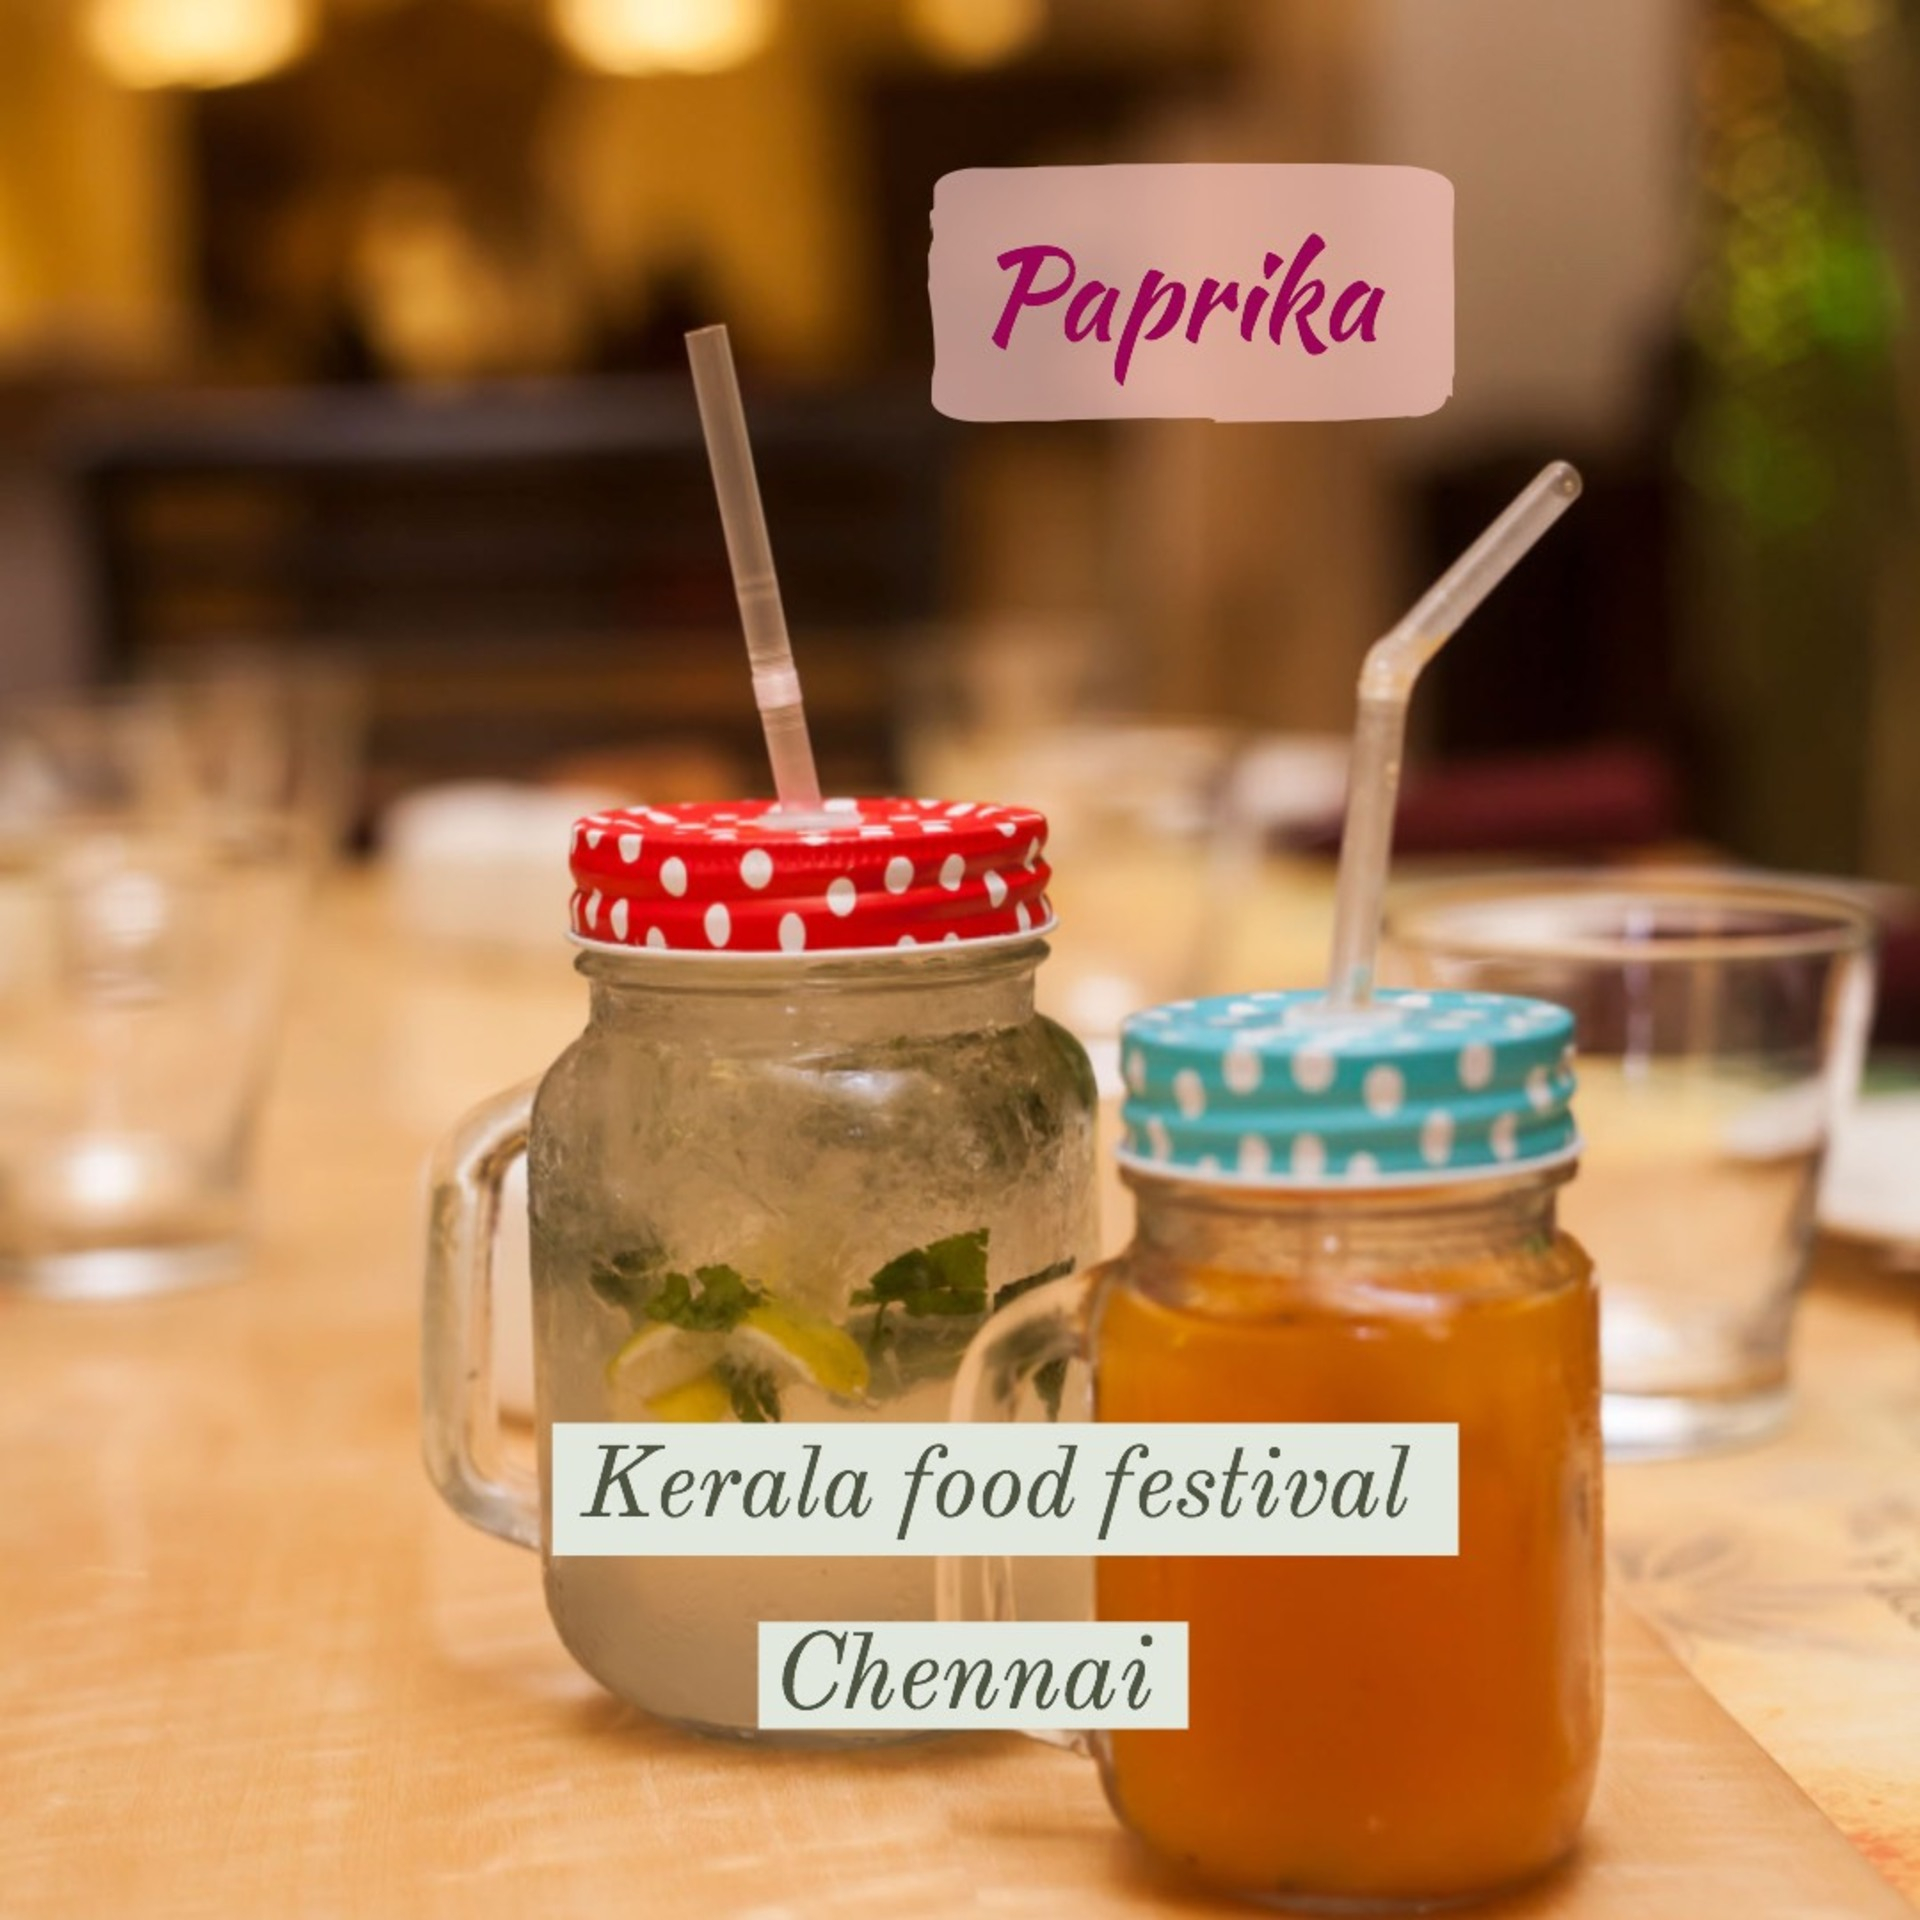 Mappila - The secrets of timeless flavours image